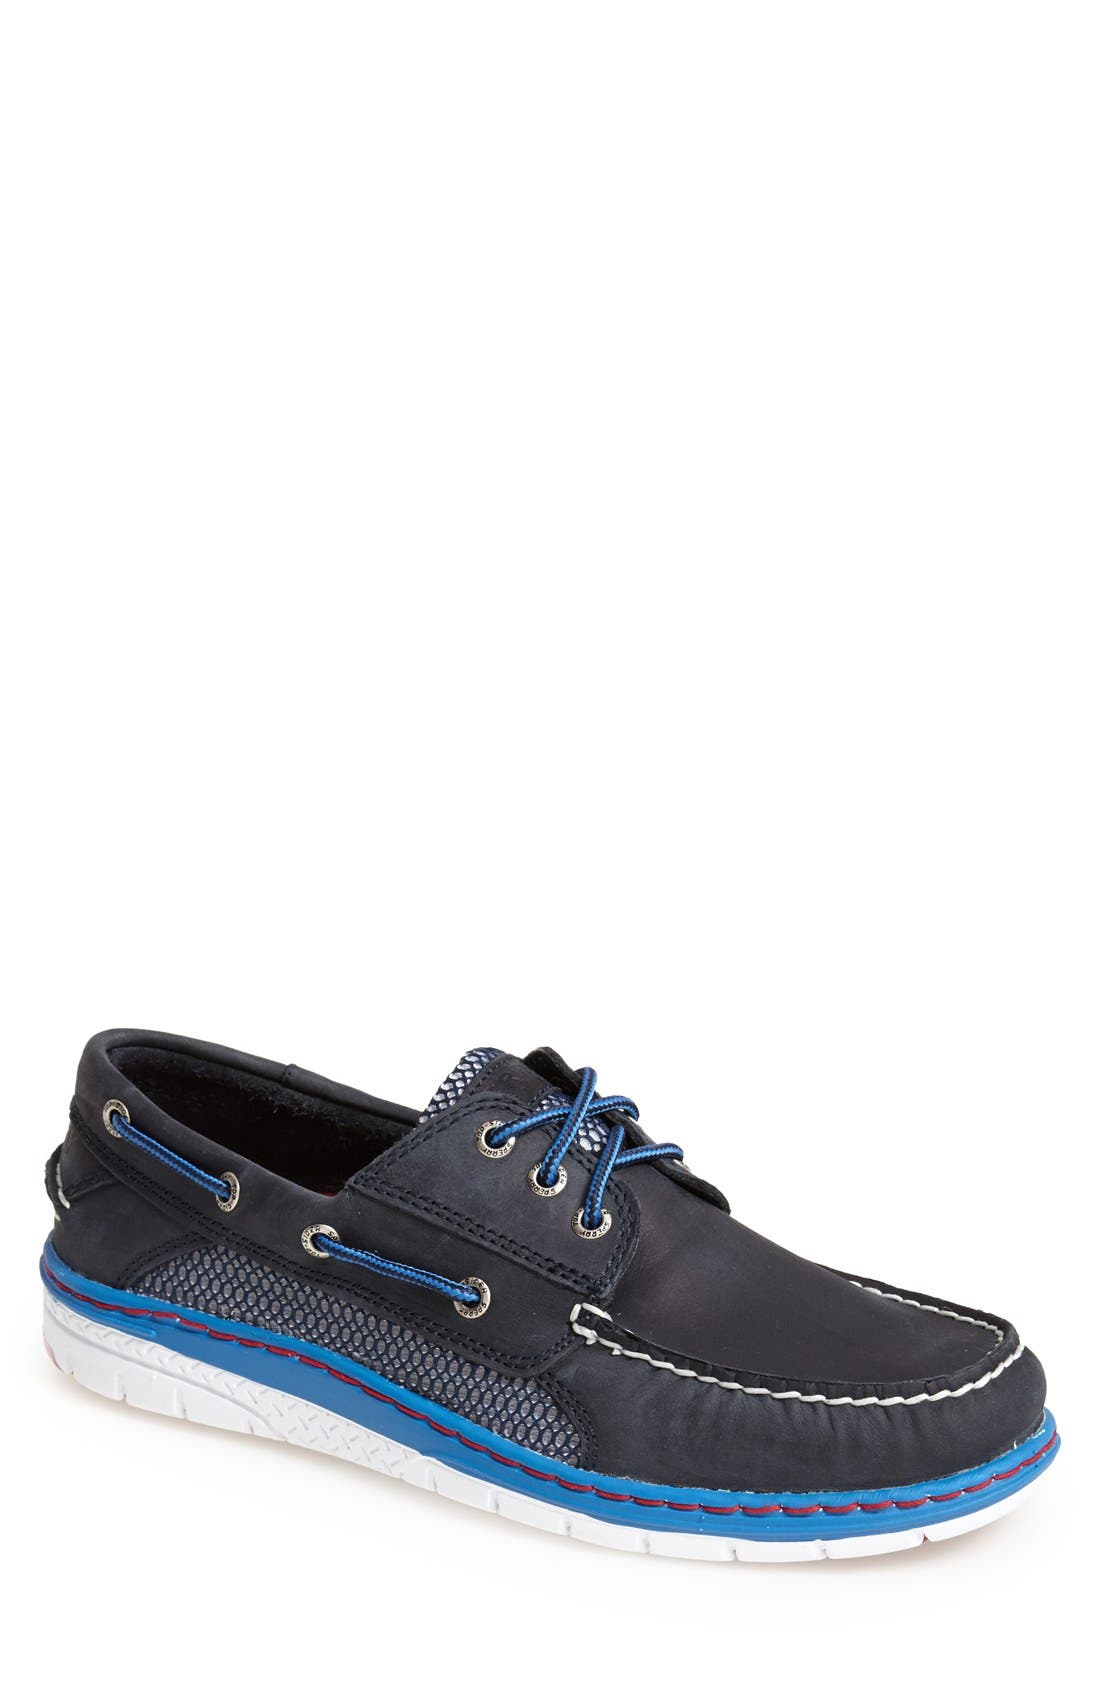 'Billfish Ultralite' Boat Shoe,                             Main thumbnail 19, color,